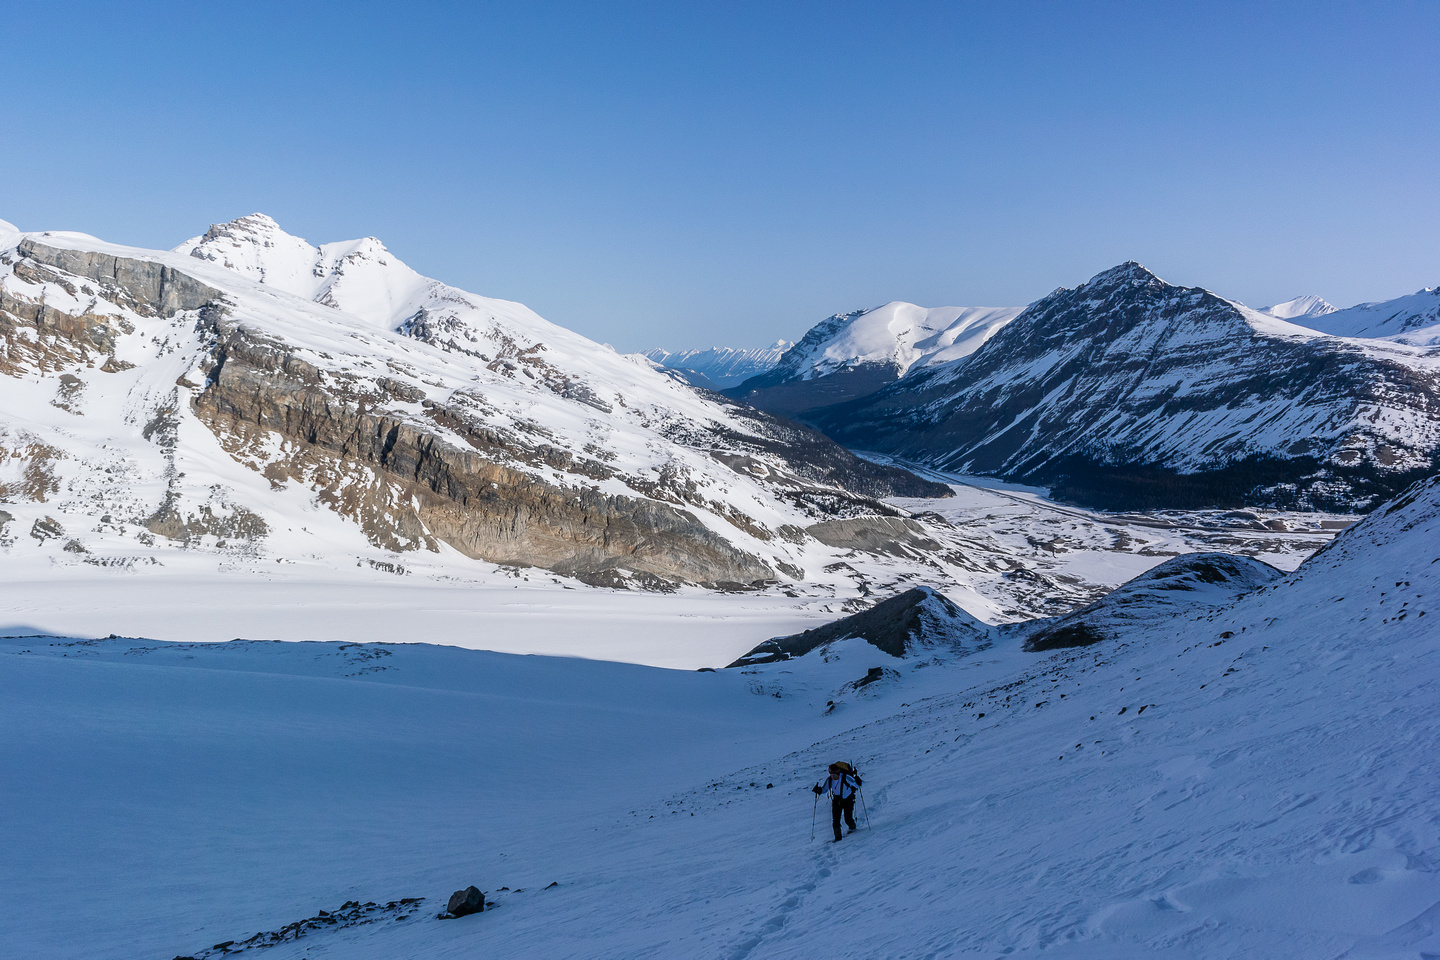 Looking back at Ferenc and our approach through the lower moraines.